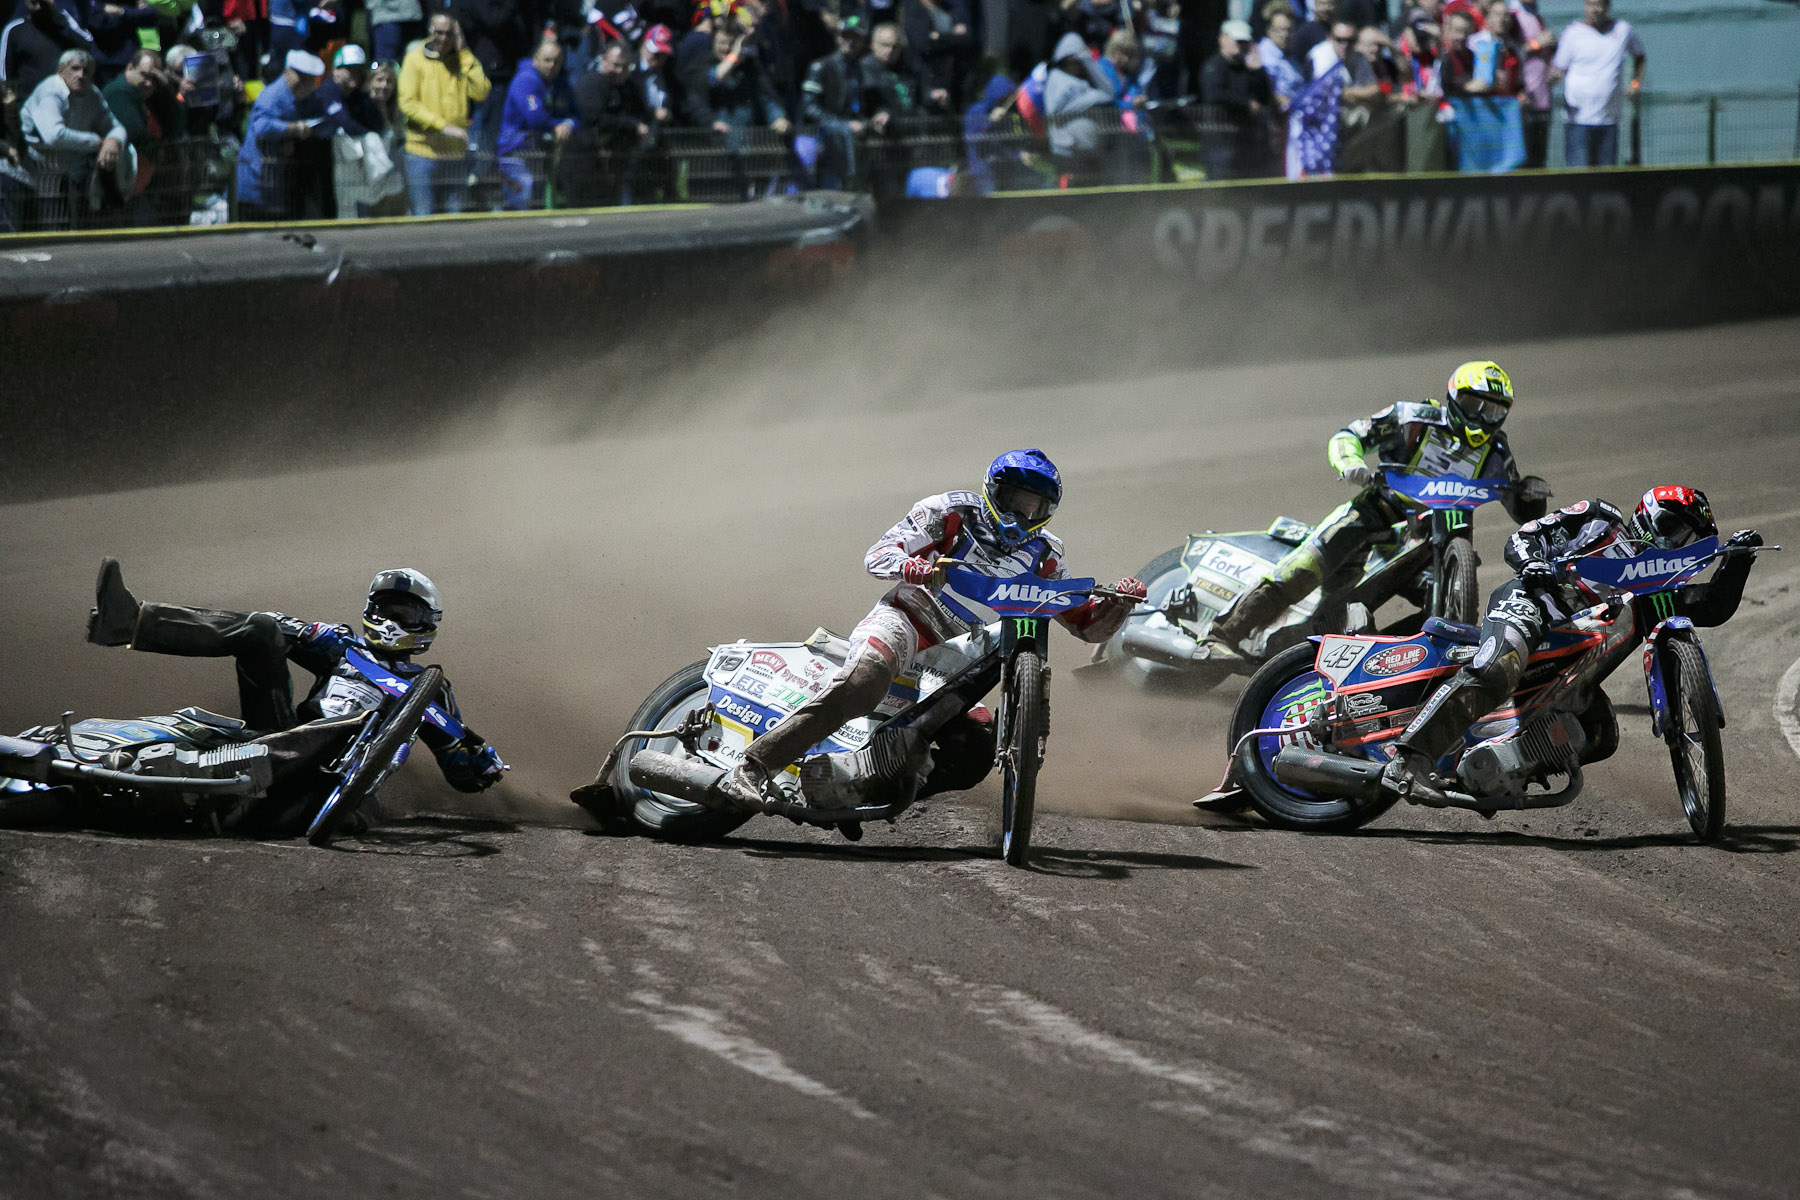 Jason Doyle of Australia crashes in the semi final race of the Mitas Slovenian FIM Speedway Grand Prix at Matija Gubec Stadium in Krsko, Slovenia, Sep. 12, 2015.